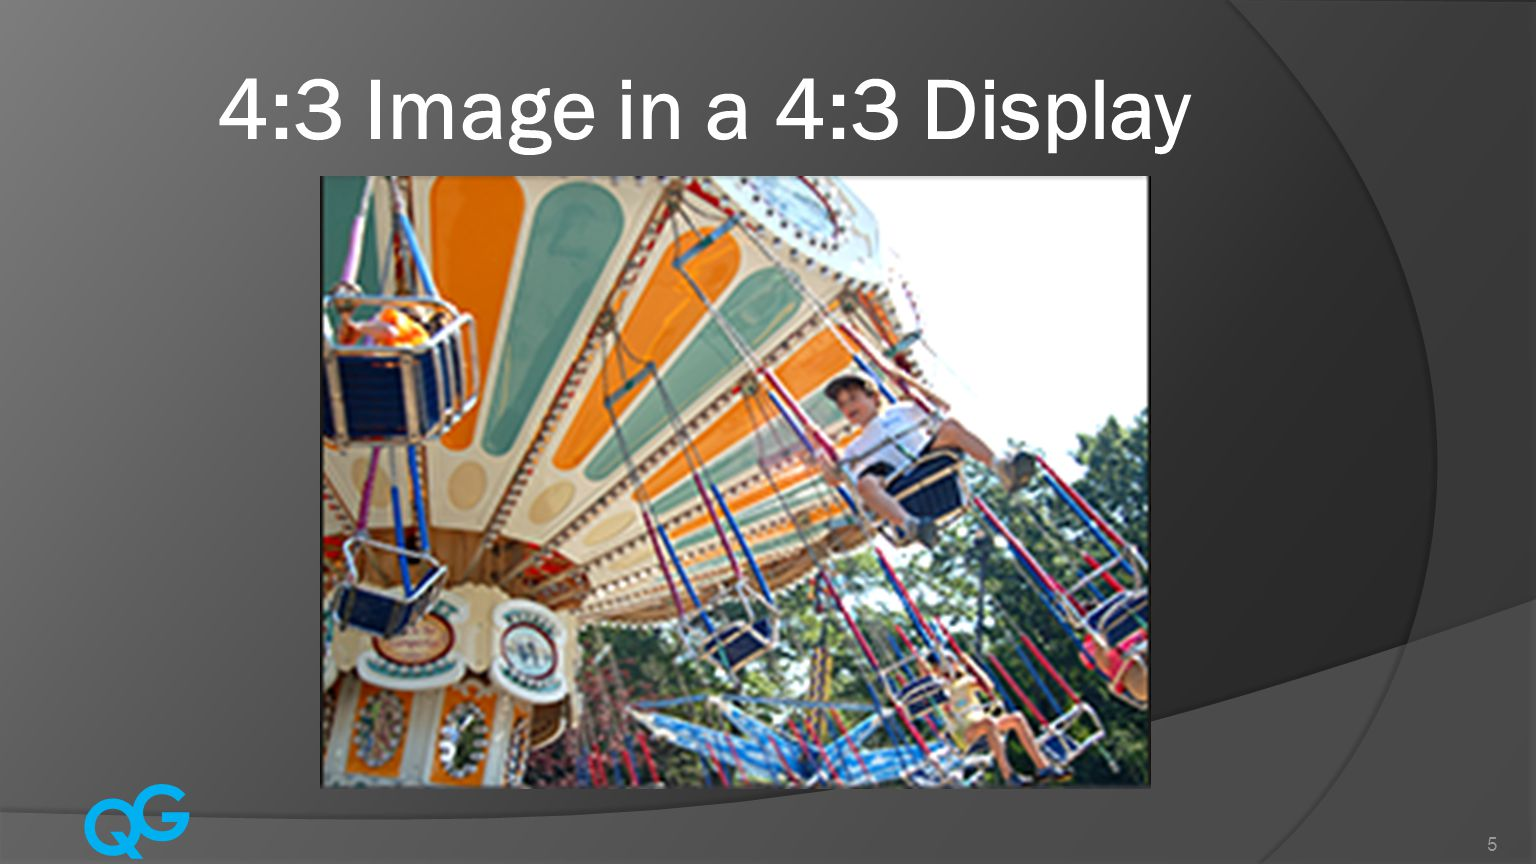 4:3 Image in a 4:3 Display